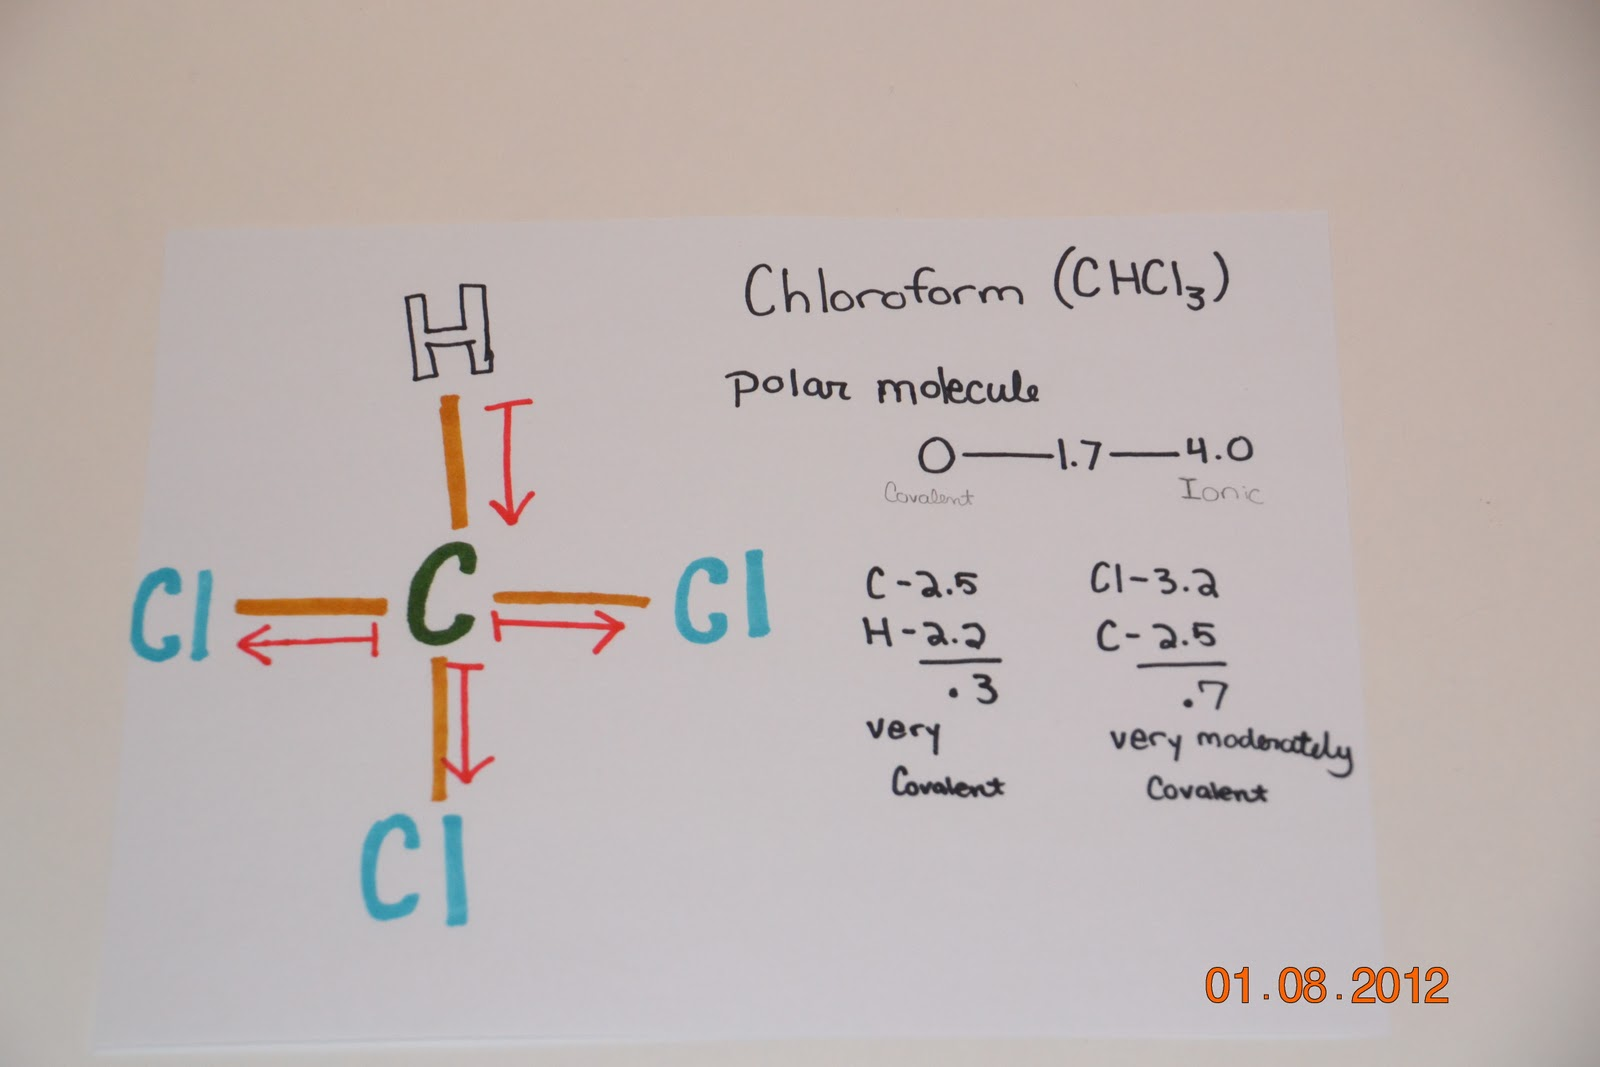 Lewis Dot Diagram For Chcl3 Minn Kota Power Drive V2 Wiring The Chemistry Of Chloroform